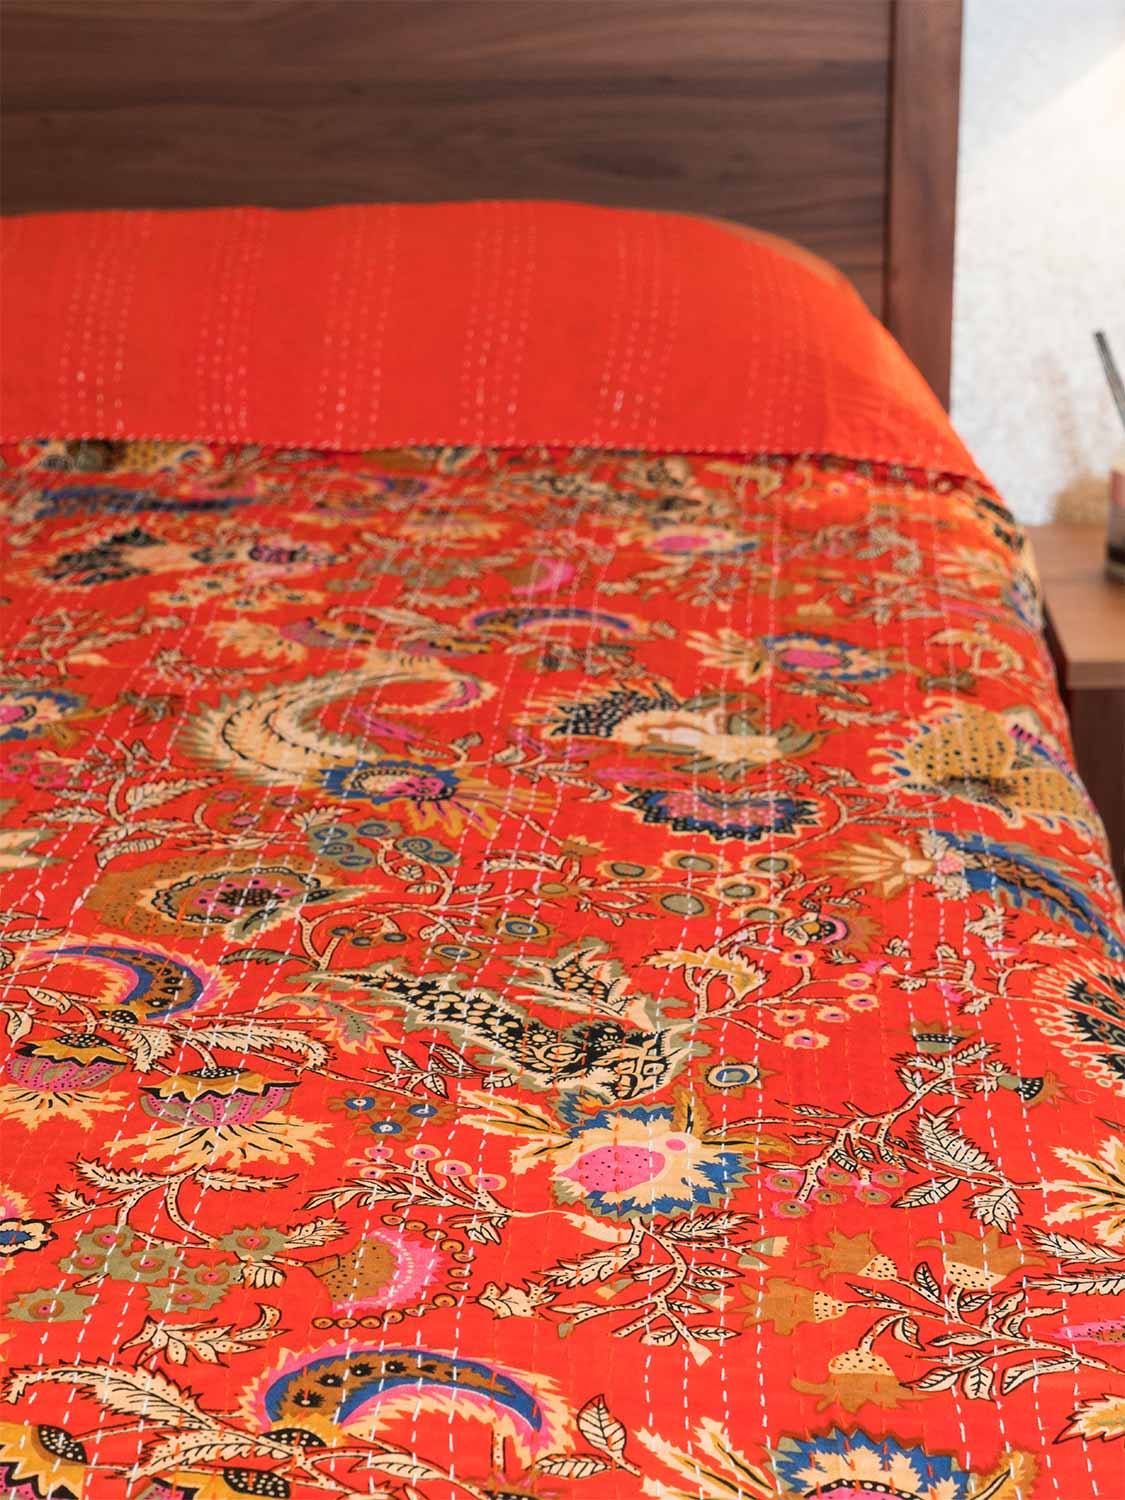 Printed Kantha Indian Bedspread, Scarlet Red